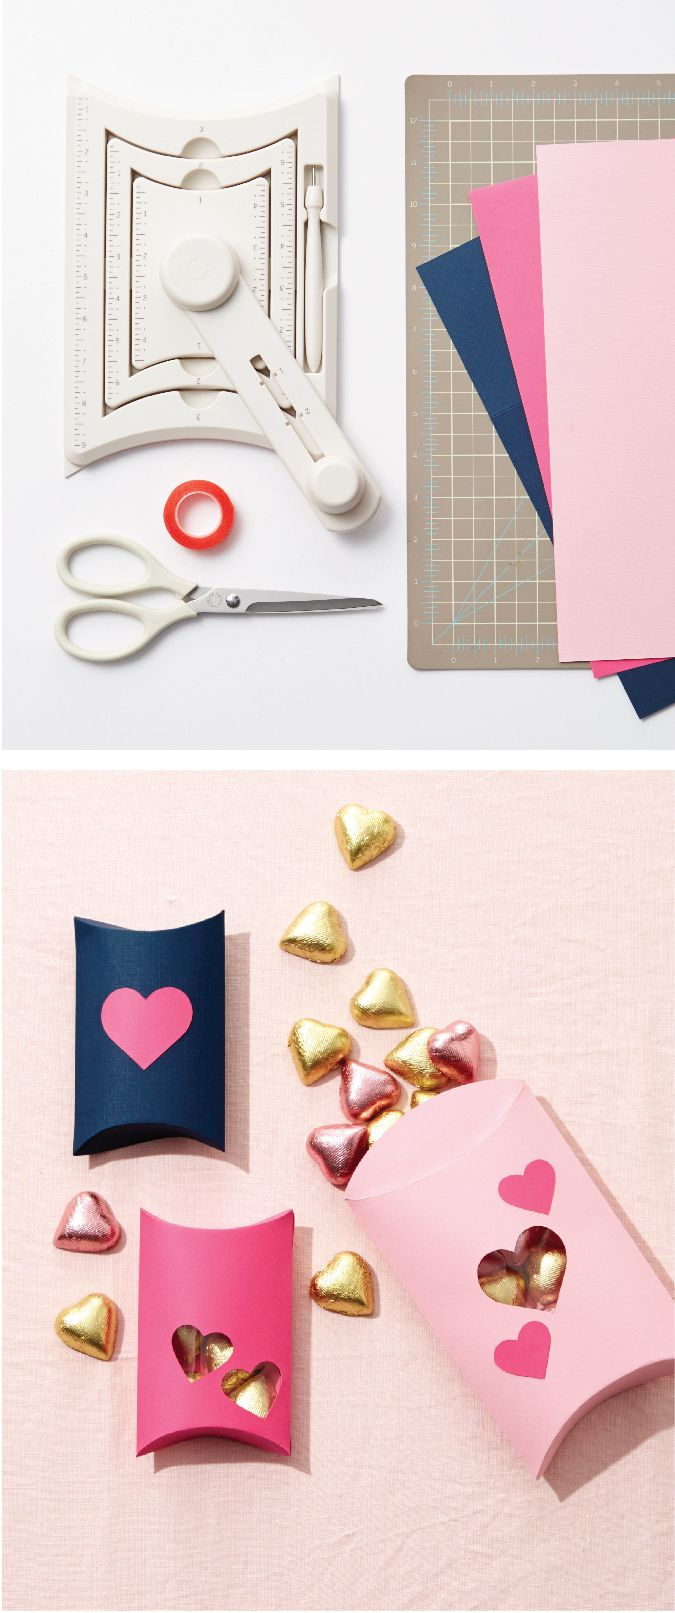 Treat your valentine with something sweet using the pillow gift box tool from Martha Stewart Crafts